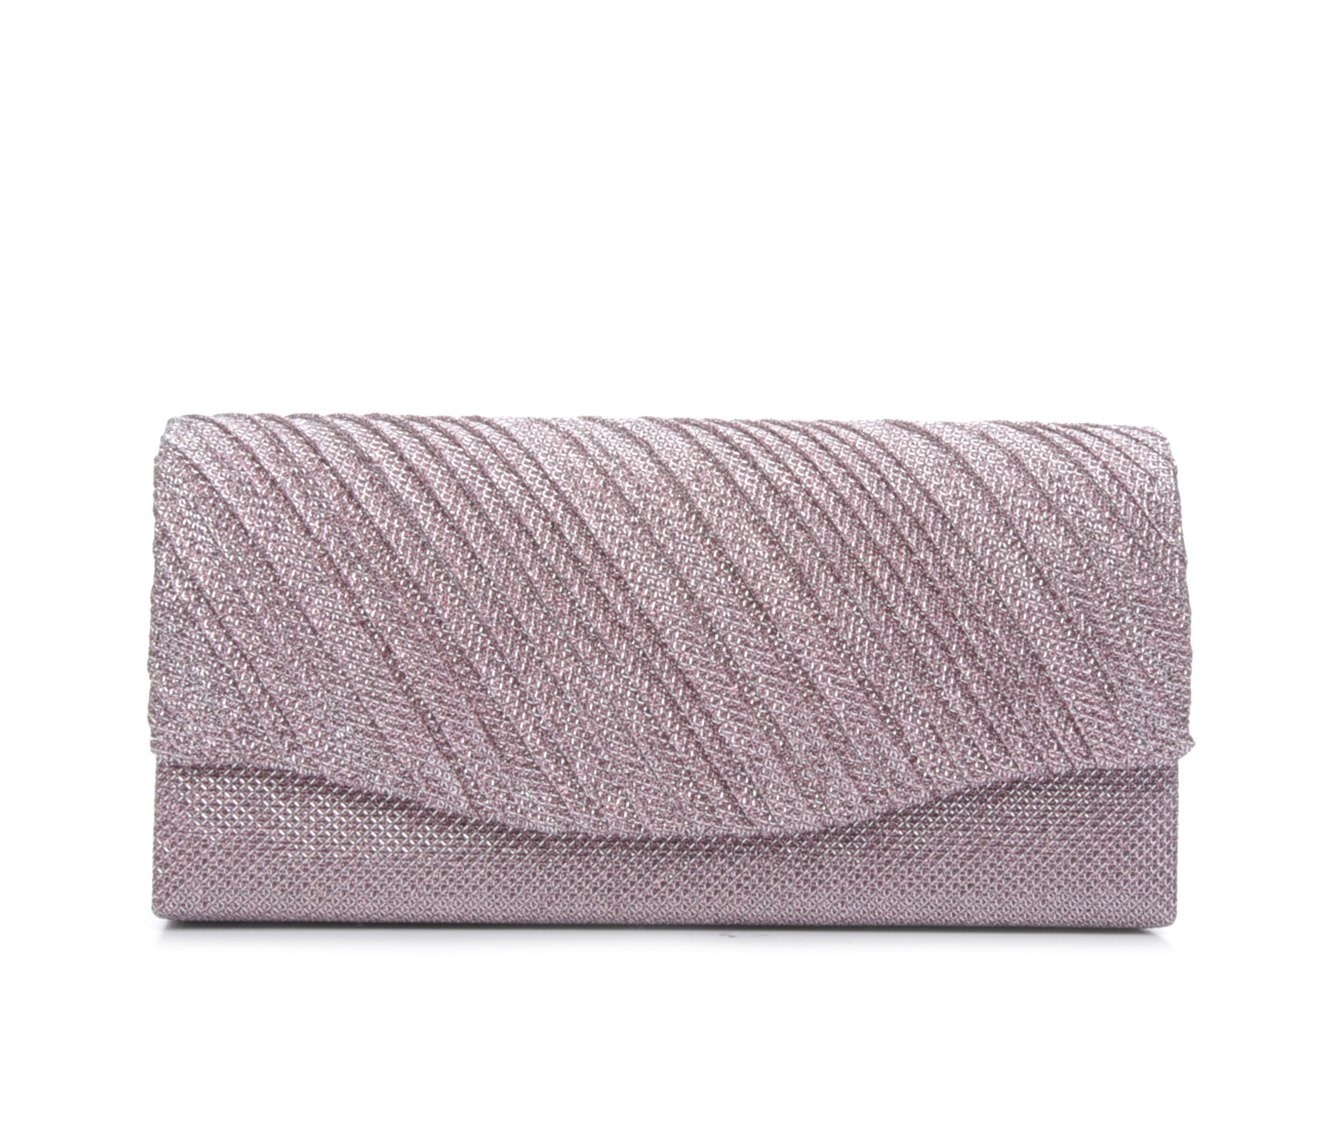 Four Seasons Handbags Small Diagonal Stripe Evening Clutch (Pink)